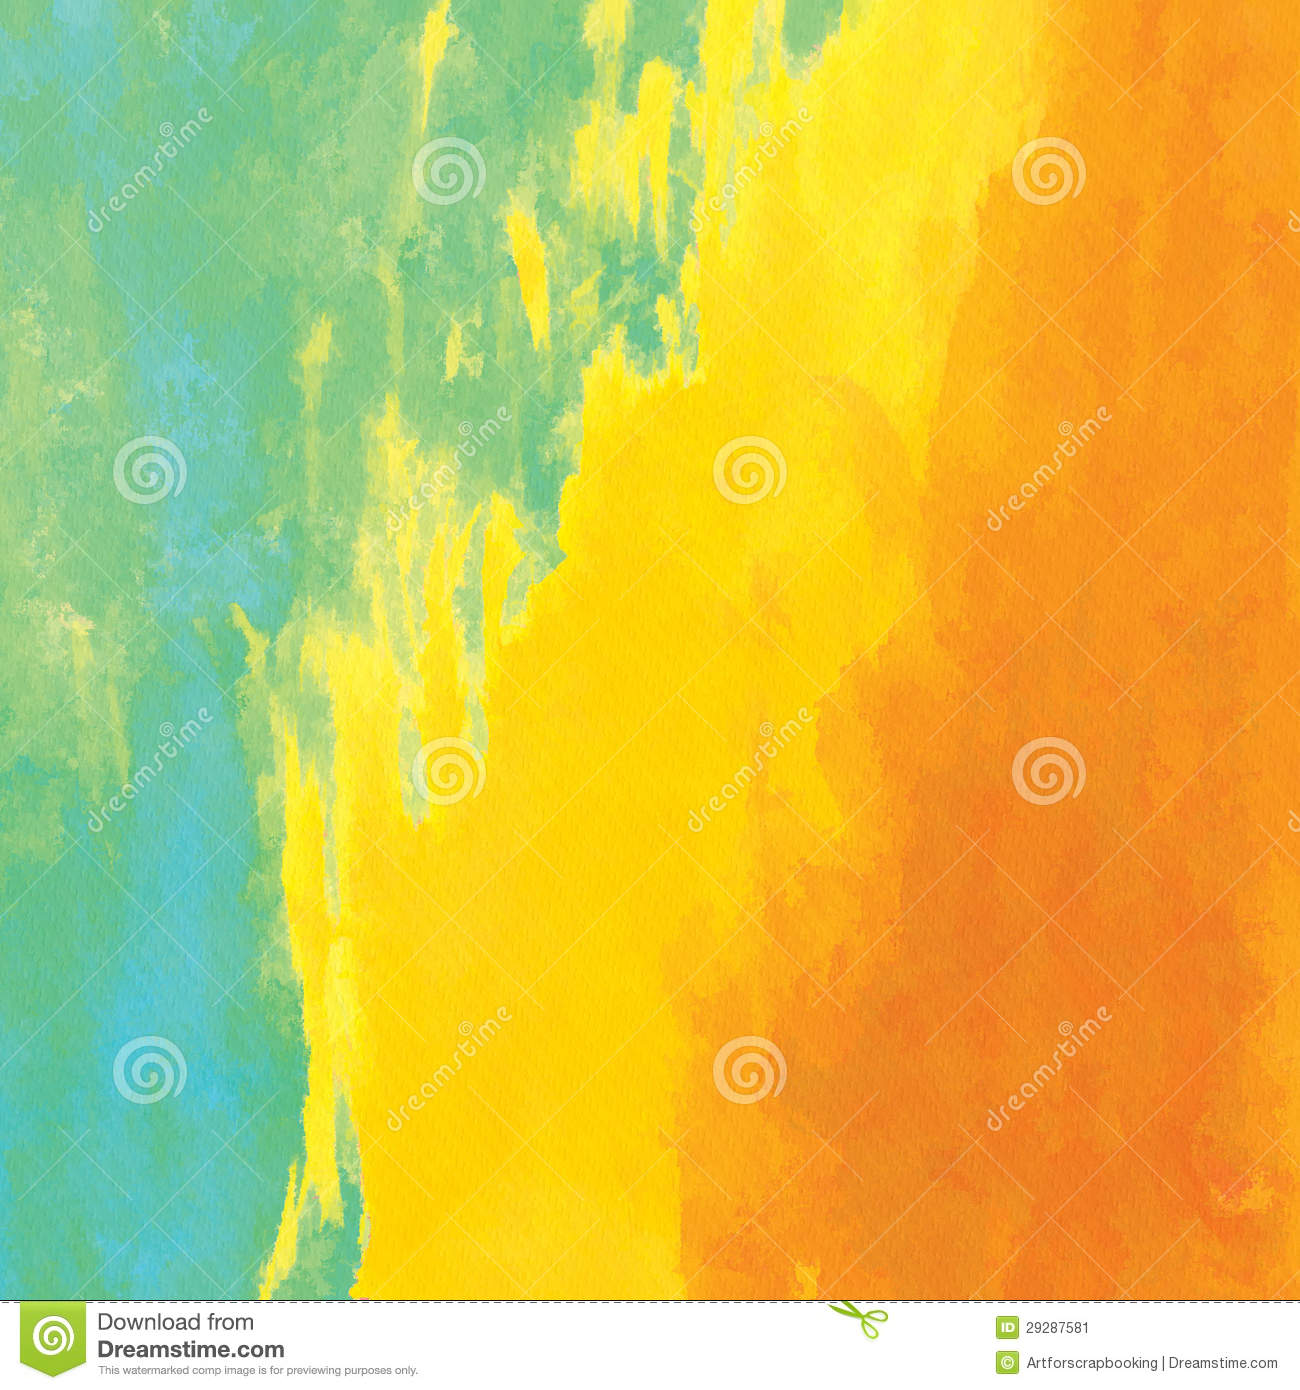 Watercolor Textured Background Scrapbook Paper Stock Image Image 29287581